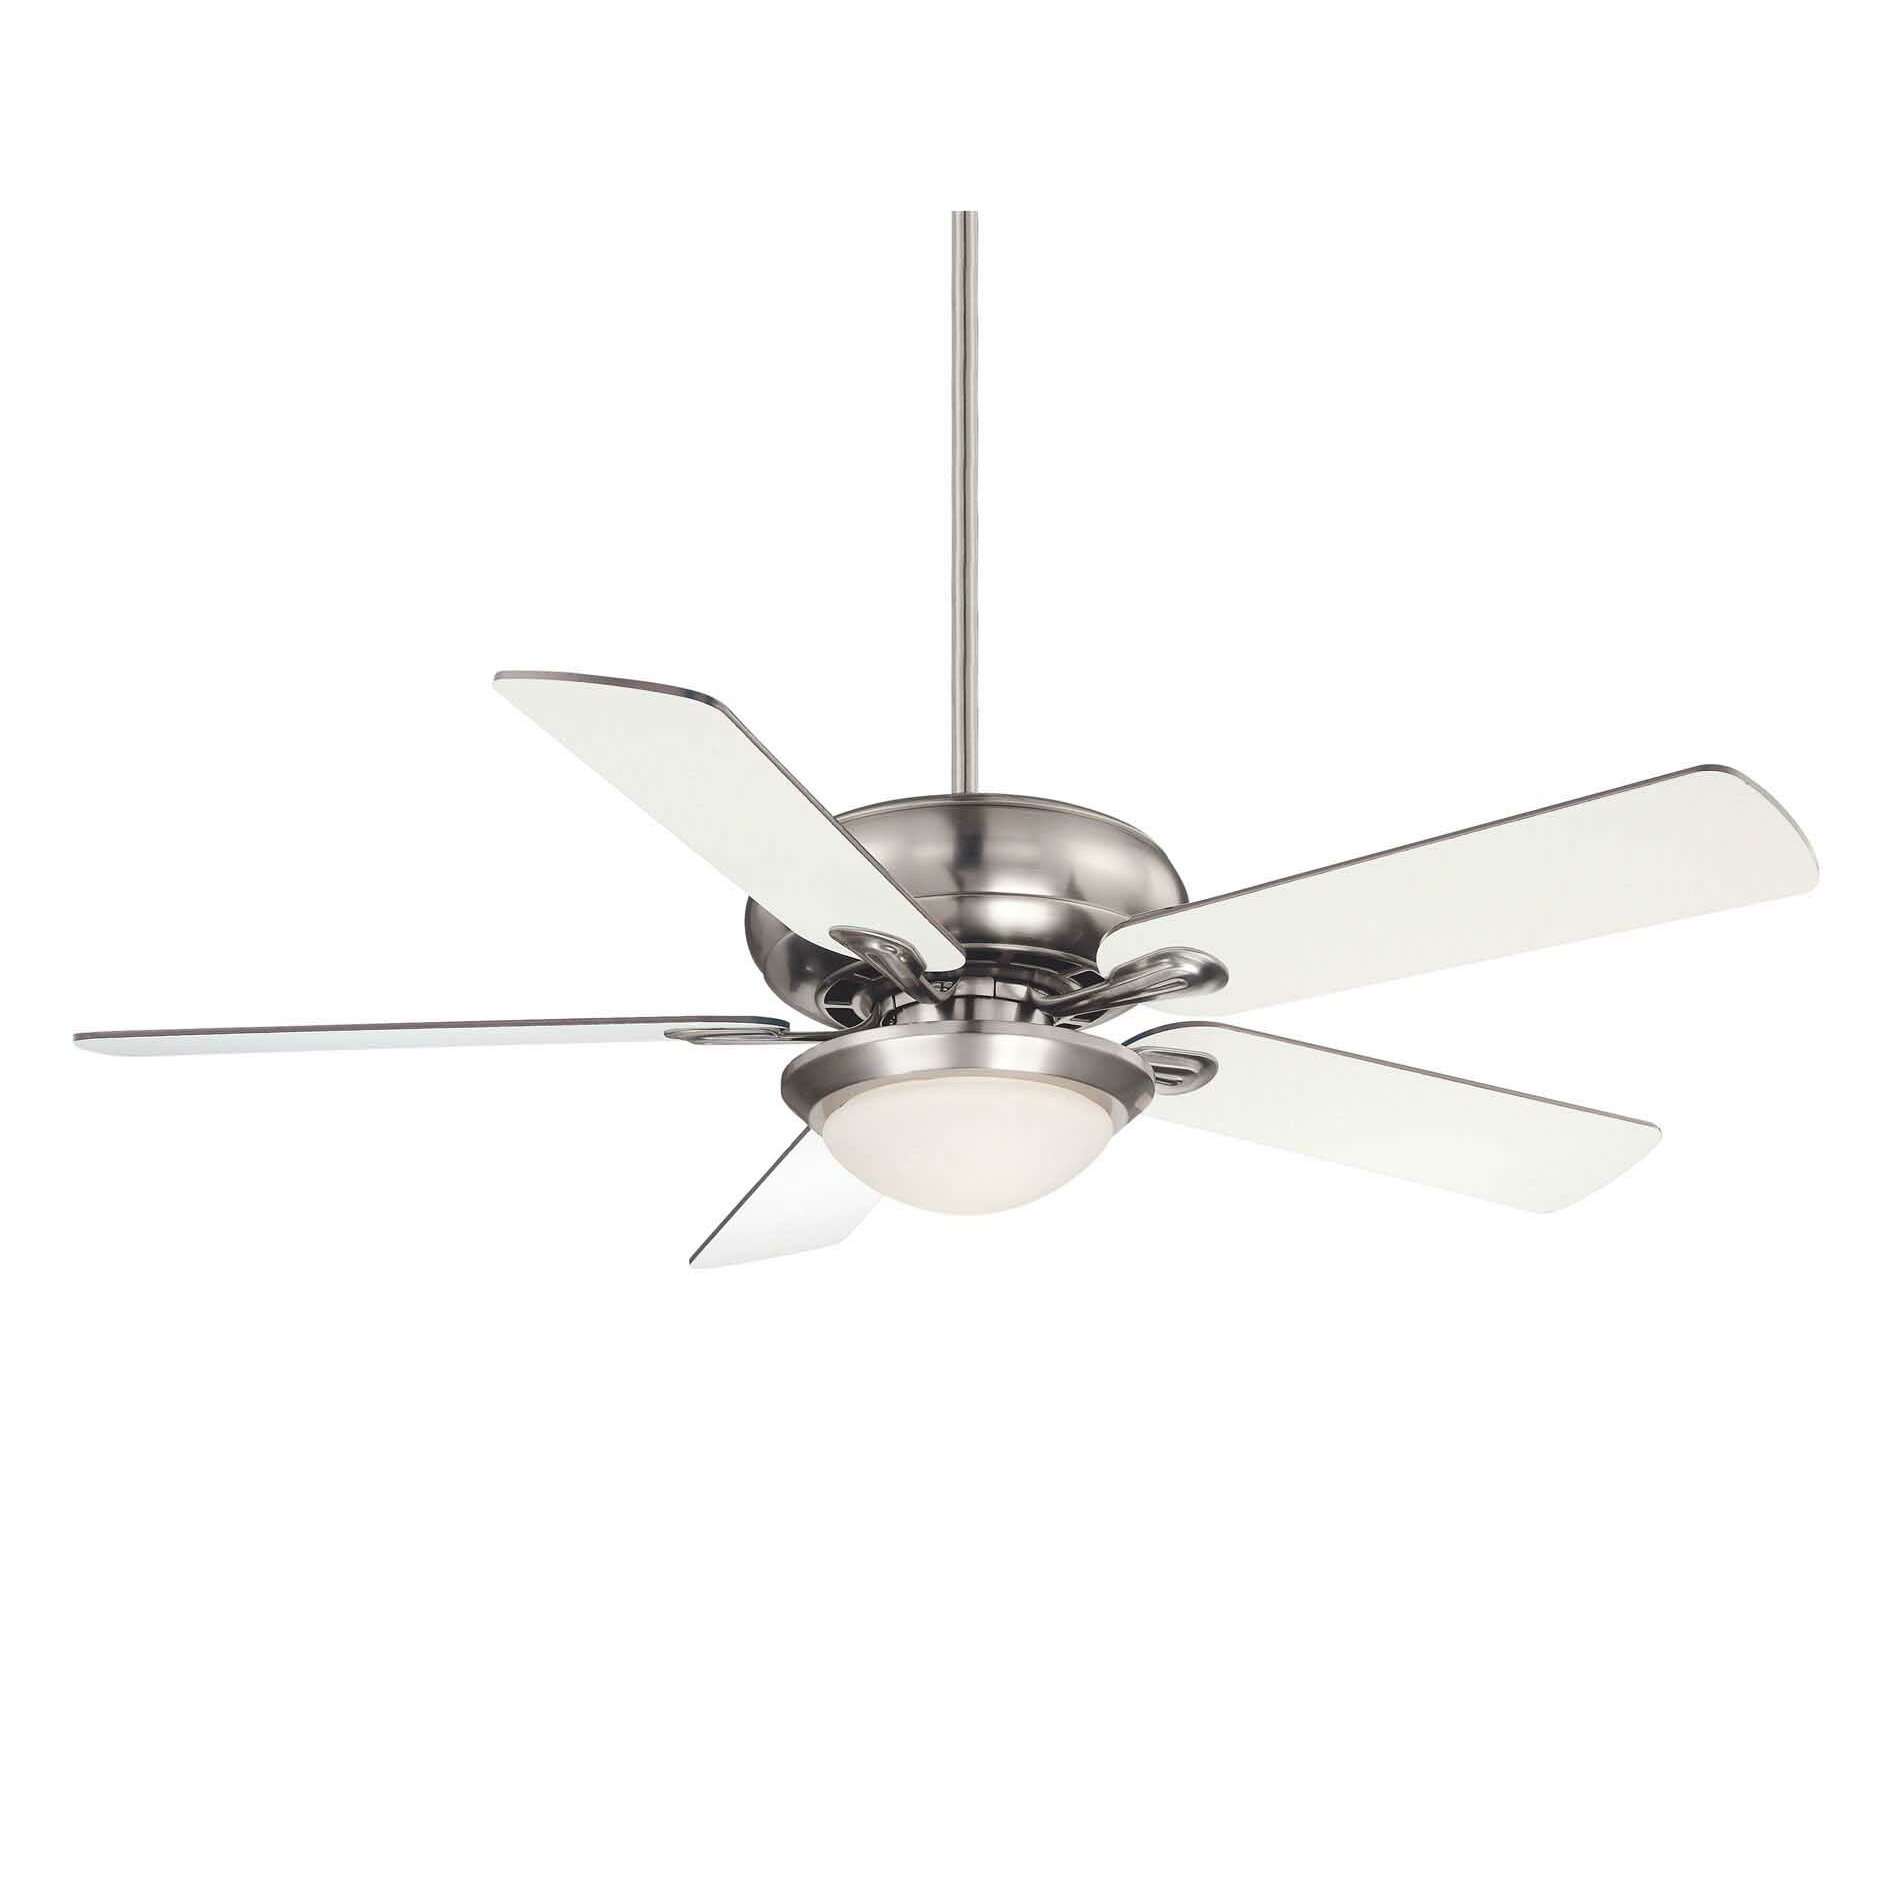 52 Ivy 5 Blade Ceiling Fan CST24929 further Bathroom Light Fixture in addition Hardwire Under Cabi  Lighting likewise 14106 Kitchen Recessed Ceiling Lights together with Dining Room Lighting Tips. on kitchen lighting fixtures ceiling menards